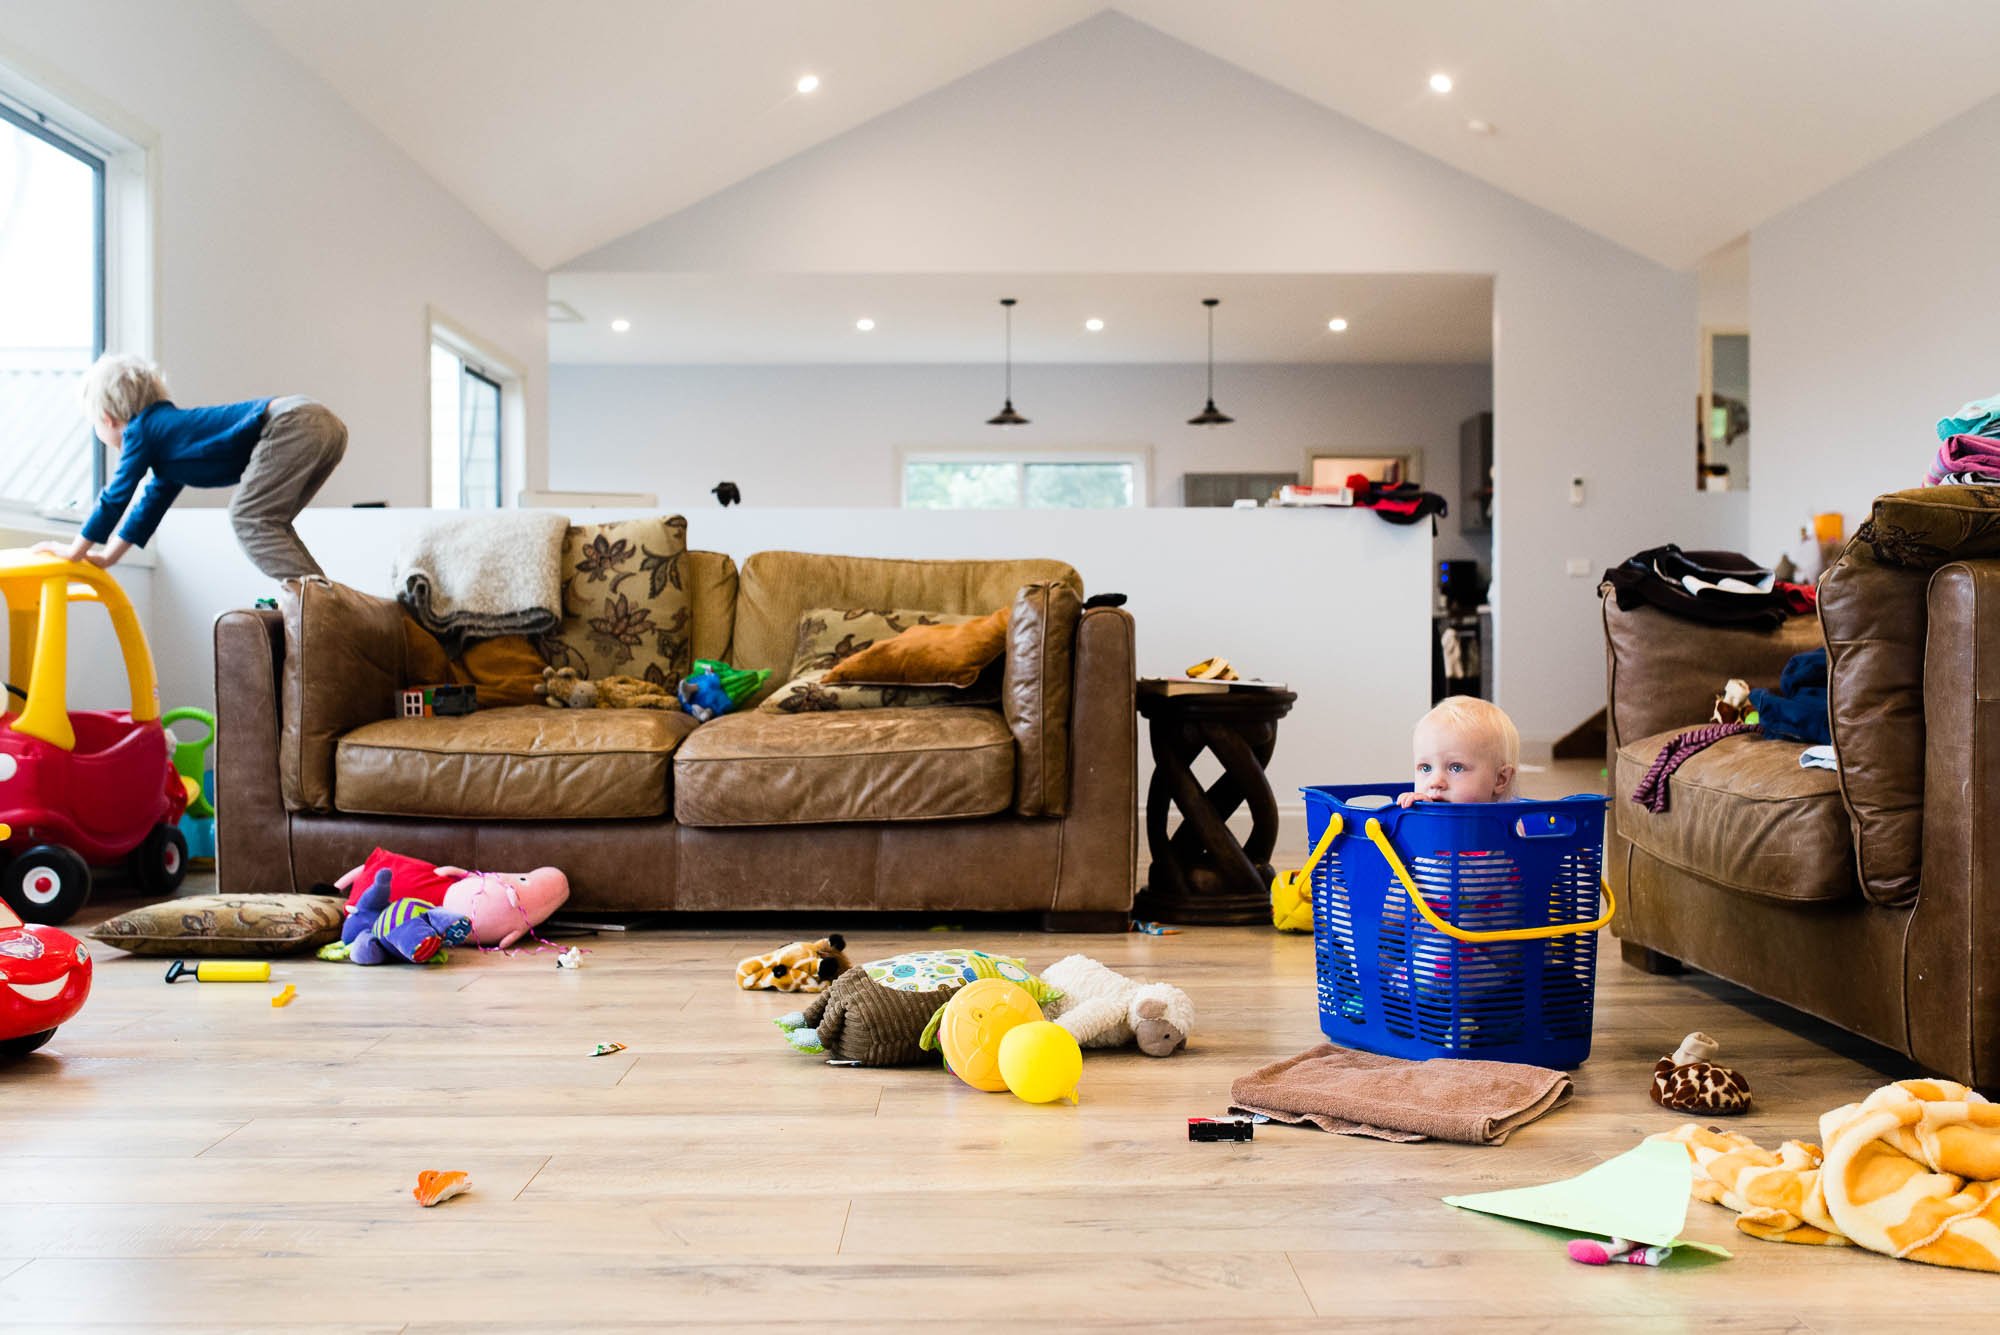 melbourne-family-photographer-messy-living-room-with-two-toddlers.jpg